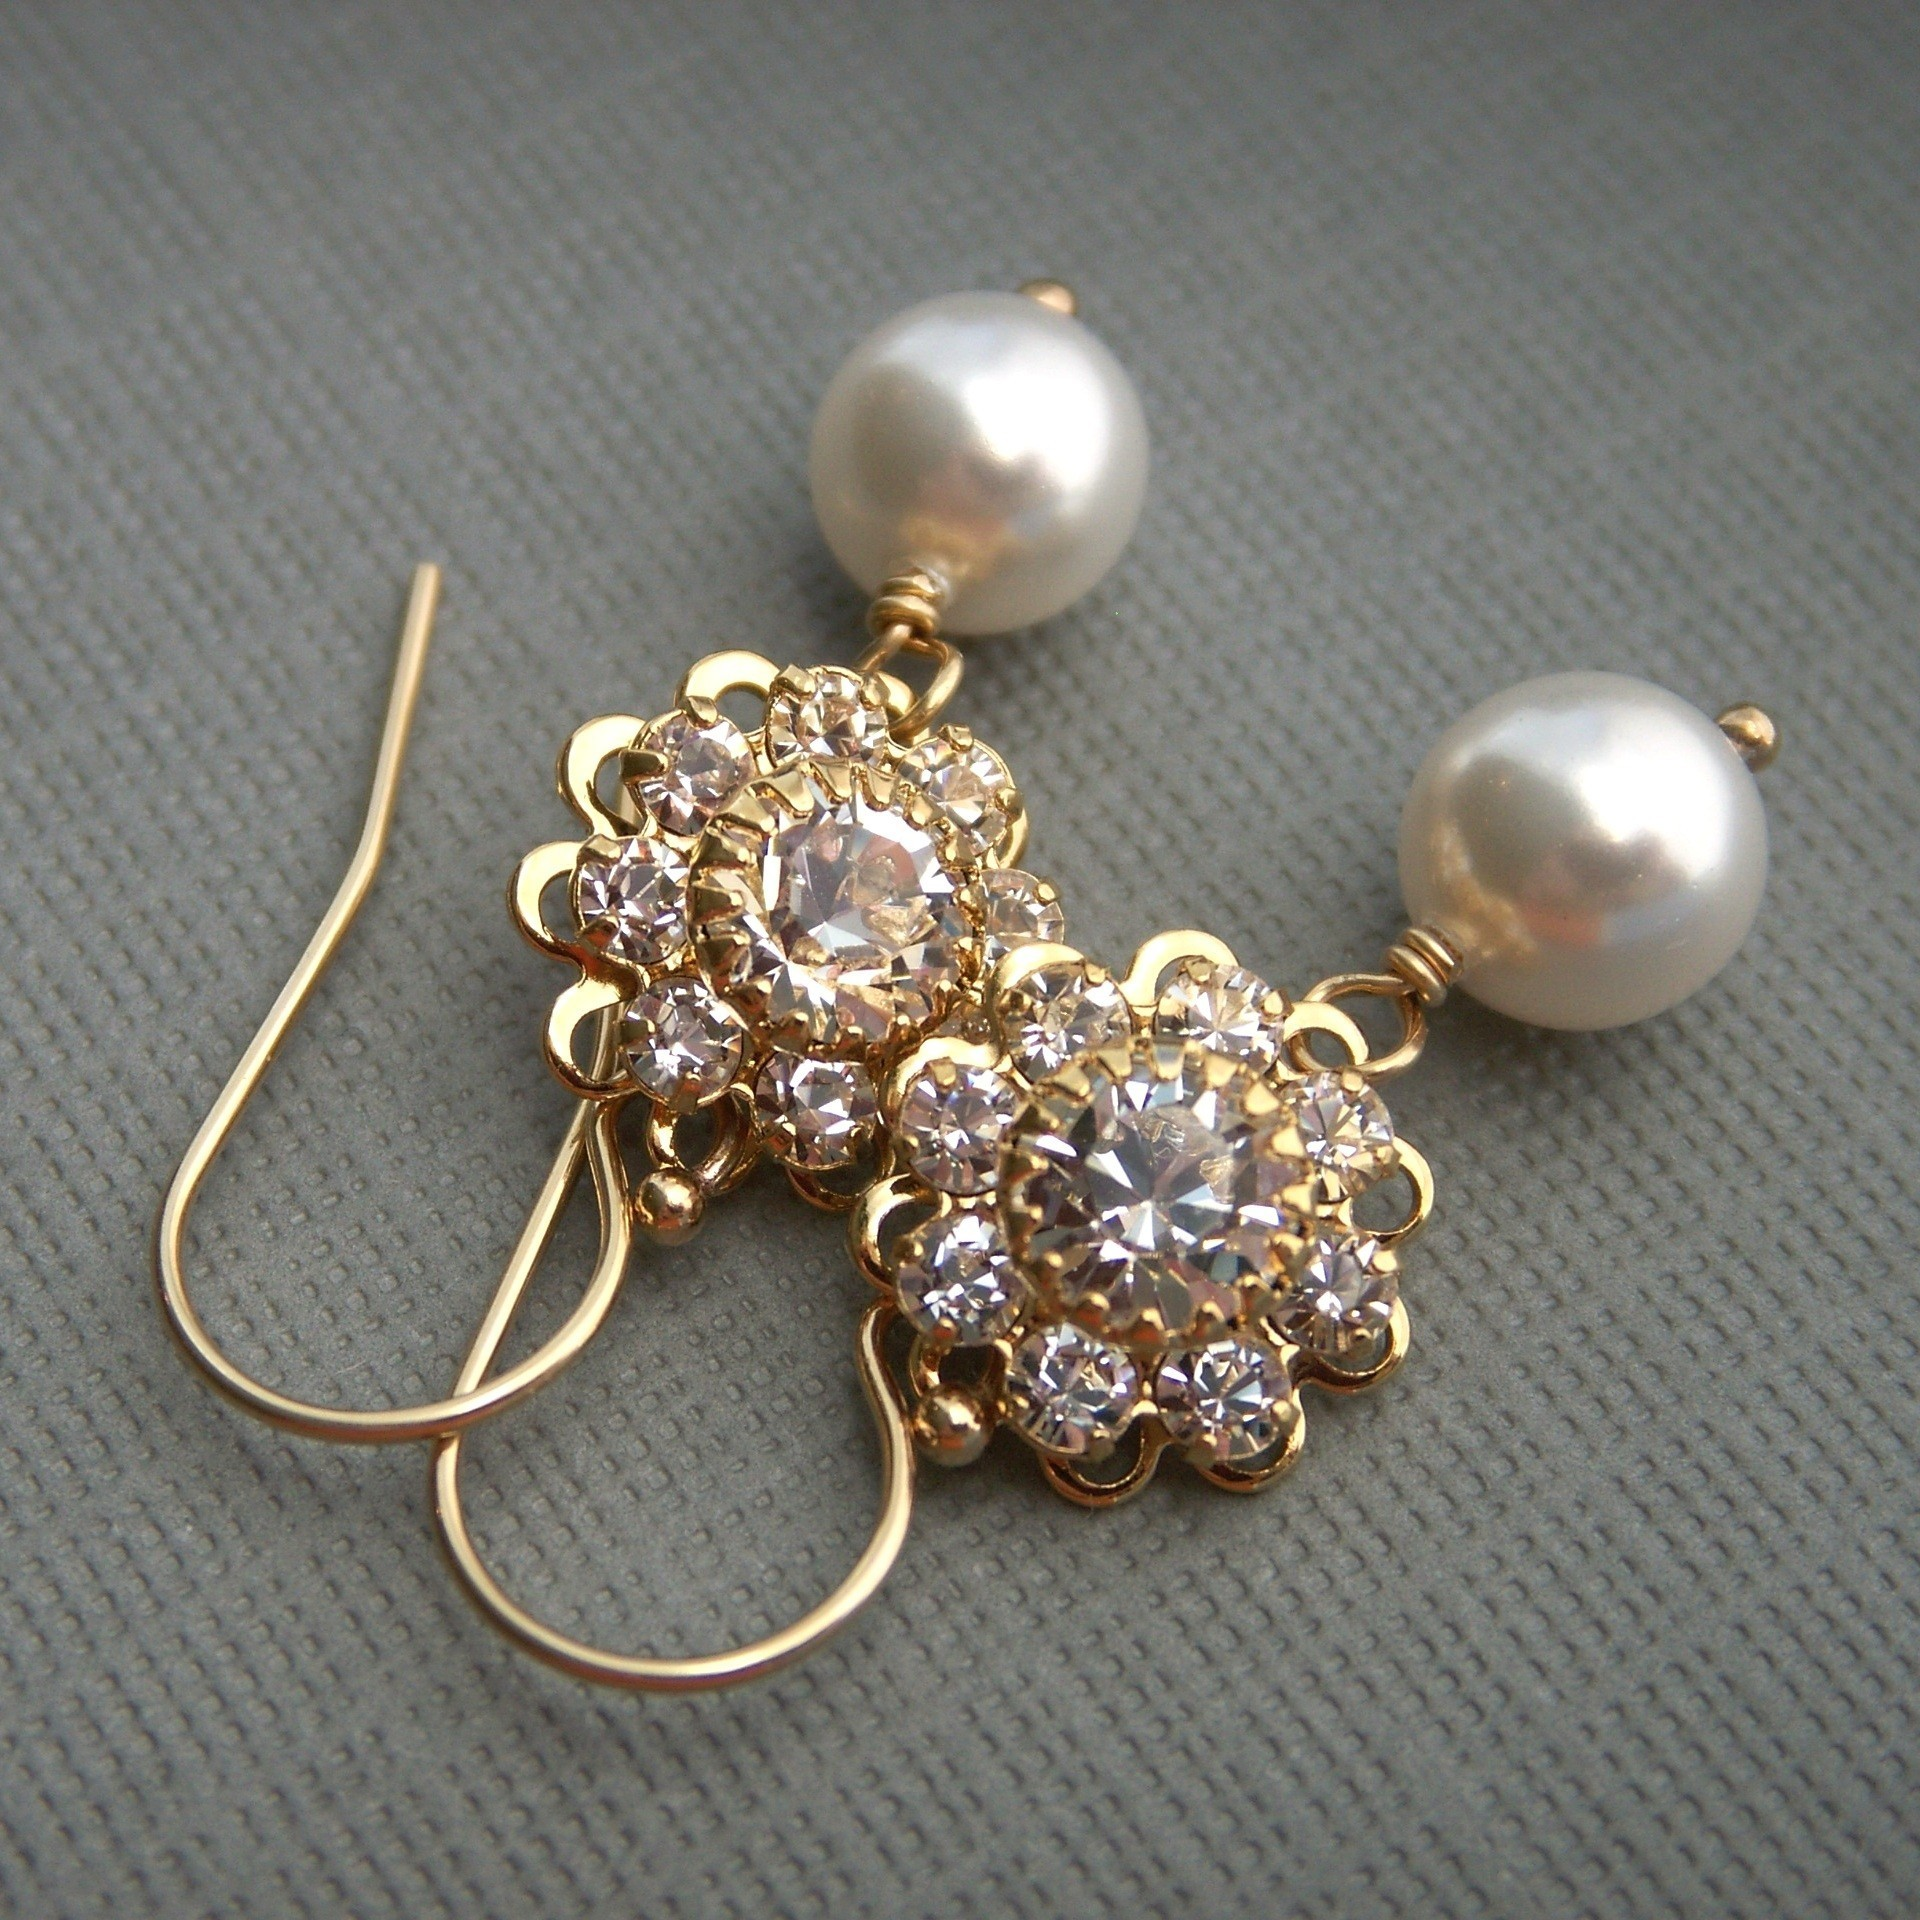 Jewelry, gold, Earrings, Bride, Bridesmaid, Crystal, Swarovski, Rhinestone, Pearl, K garner designs